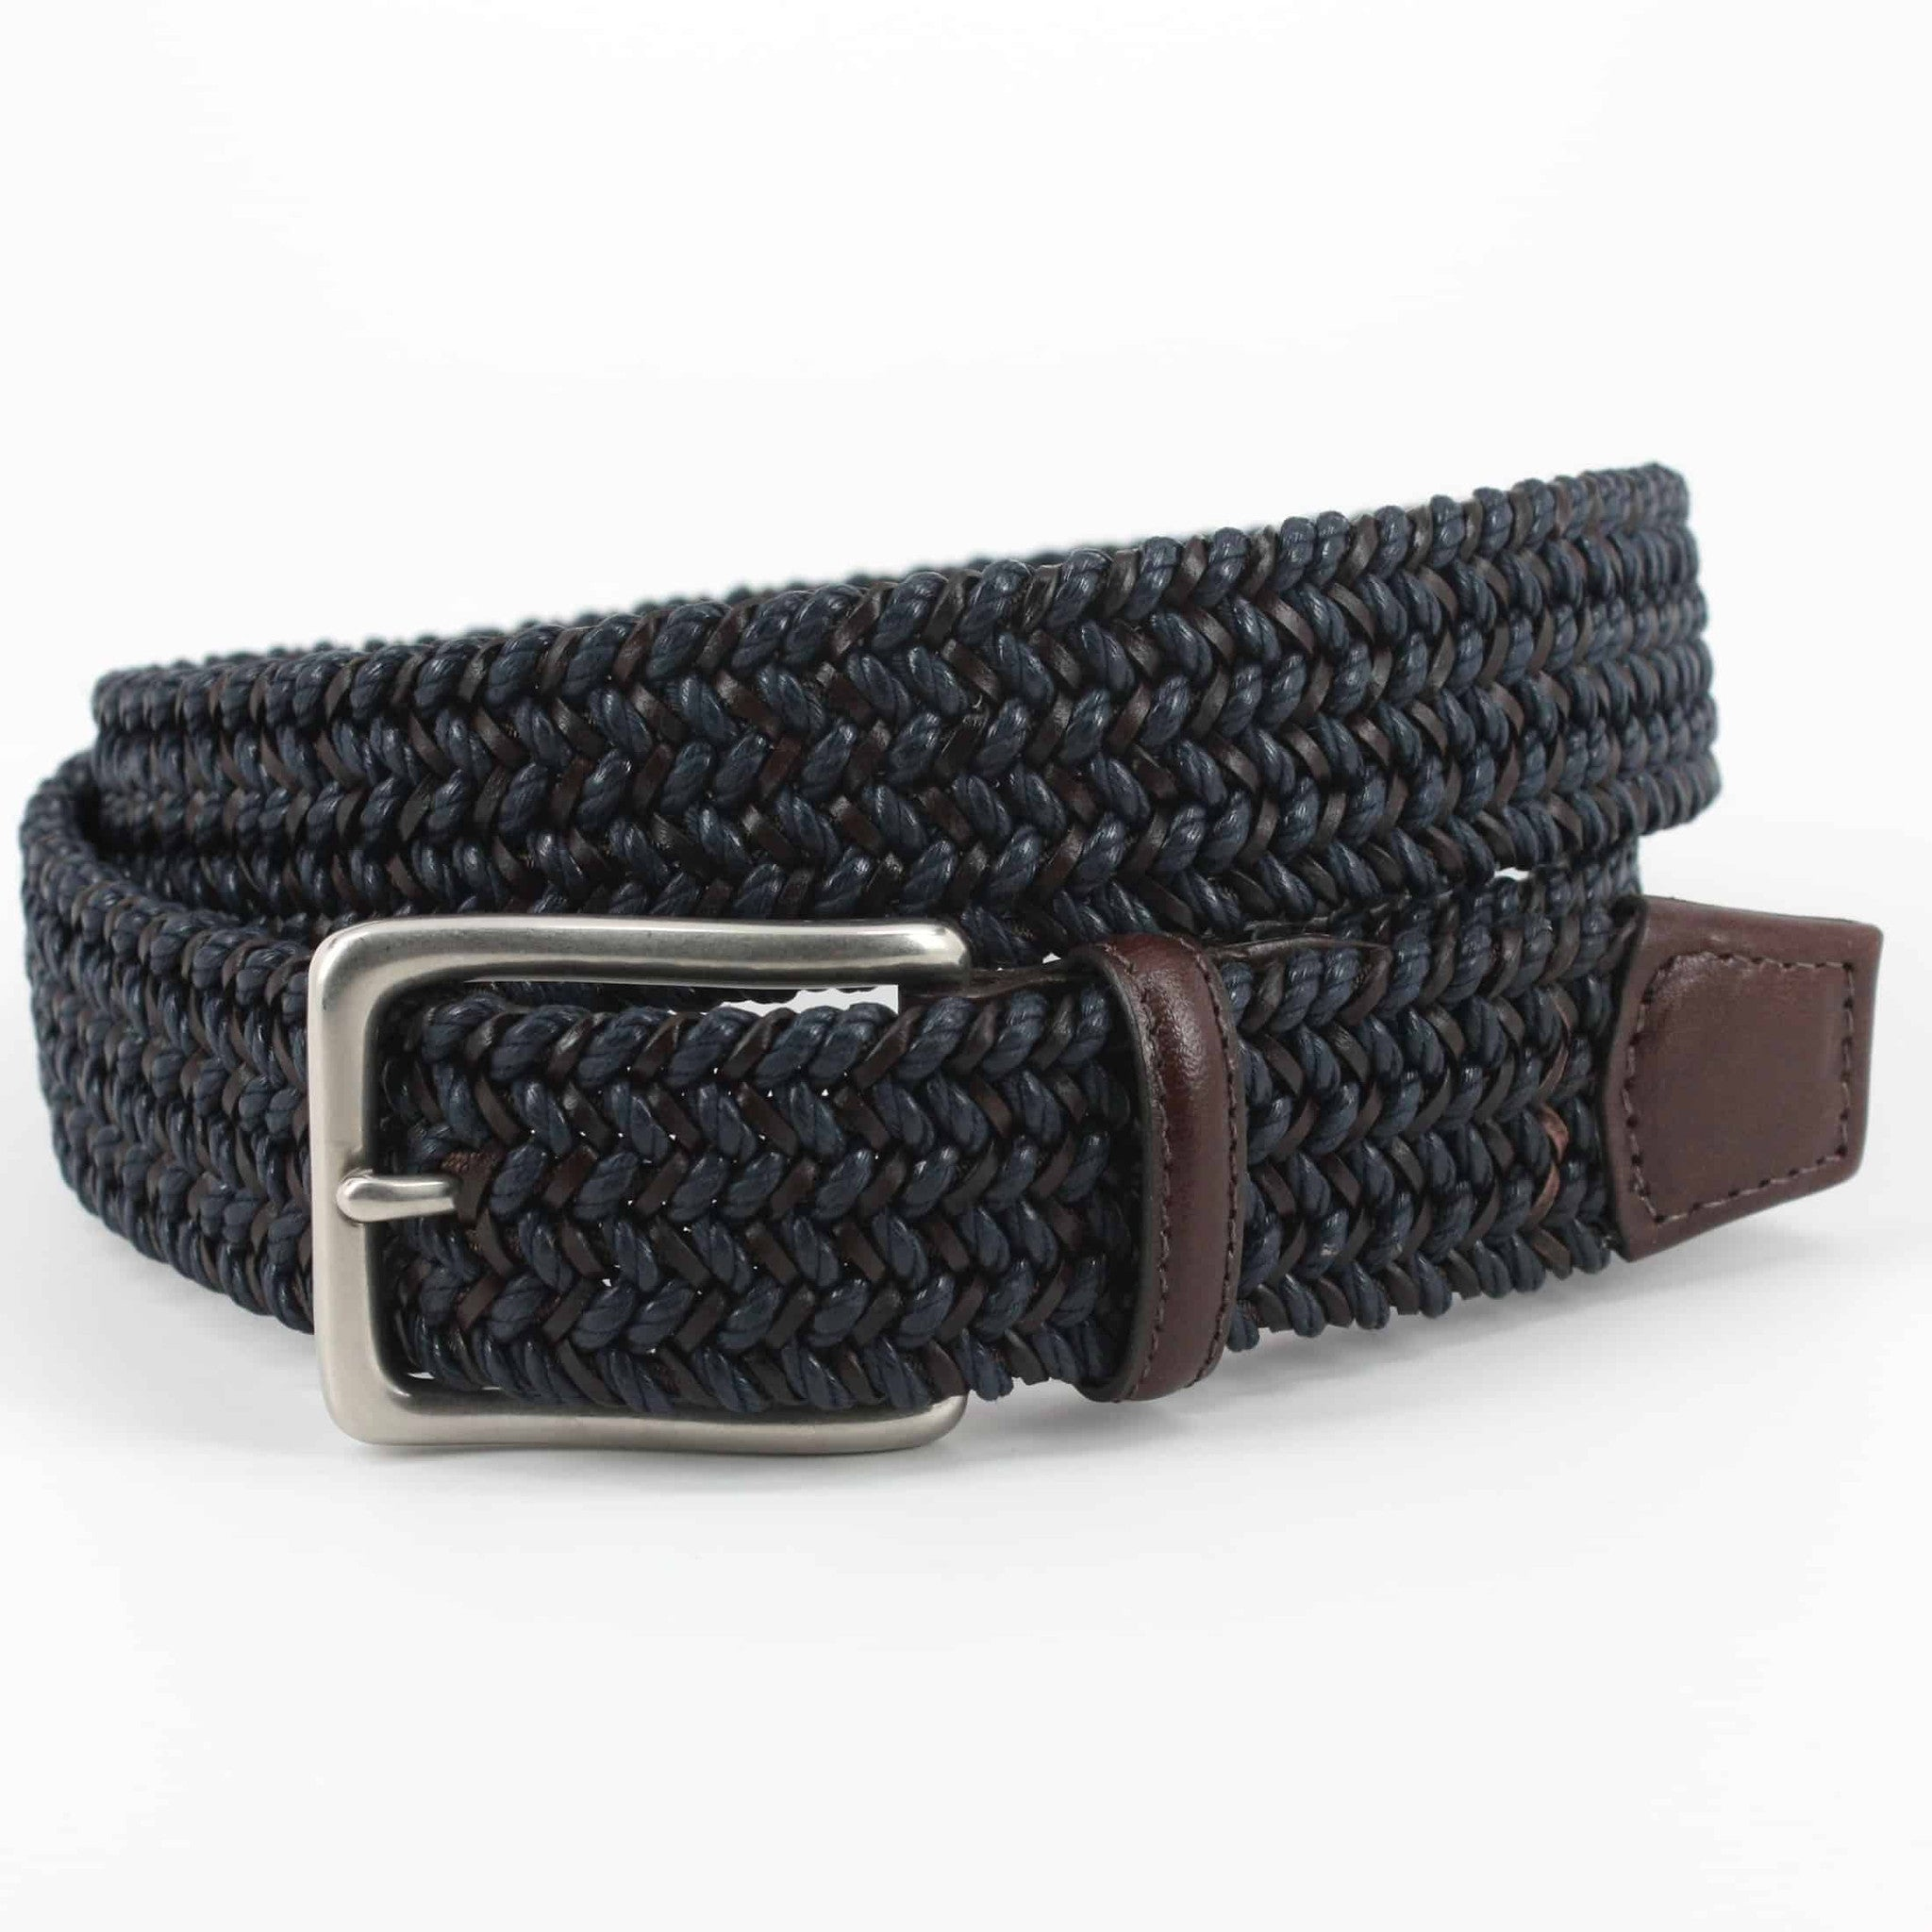 Torino Italian Woven Cotton And Leather Belt